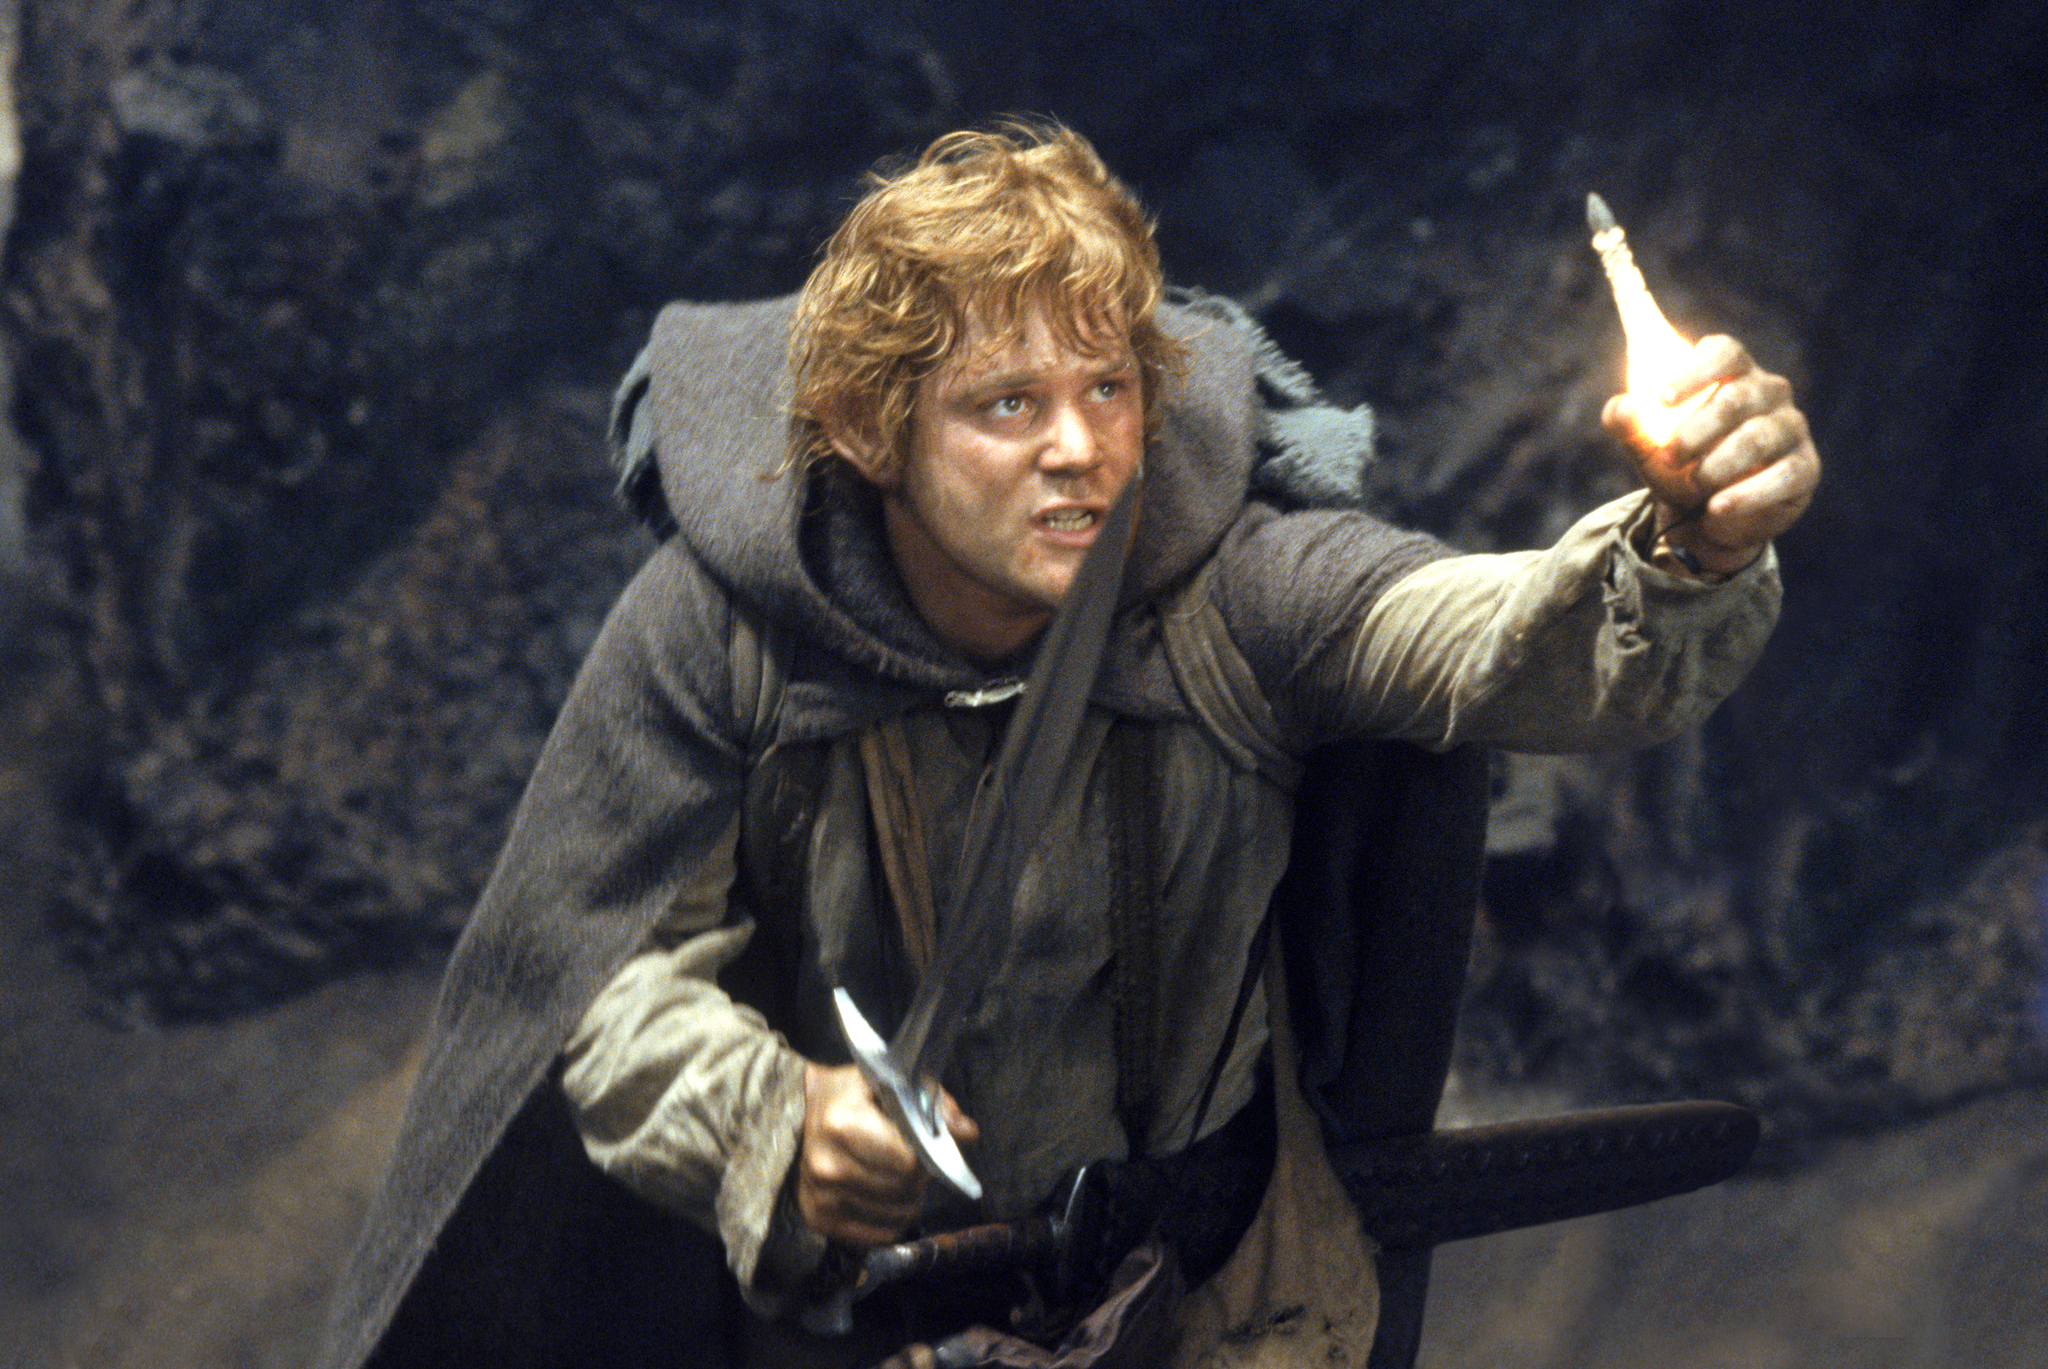 Sean Astin in The Lord of the Rings: The Return of the King (2003)